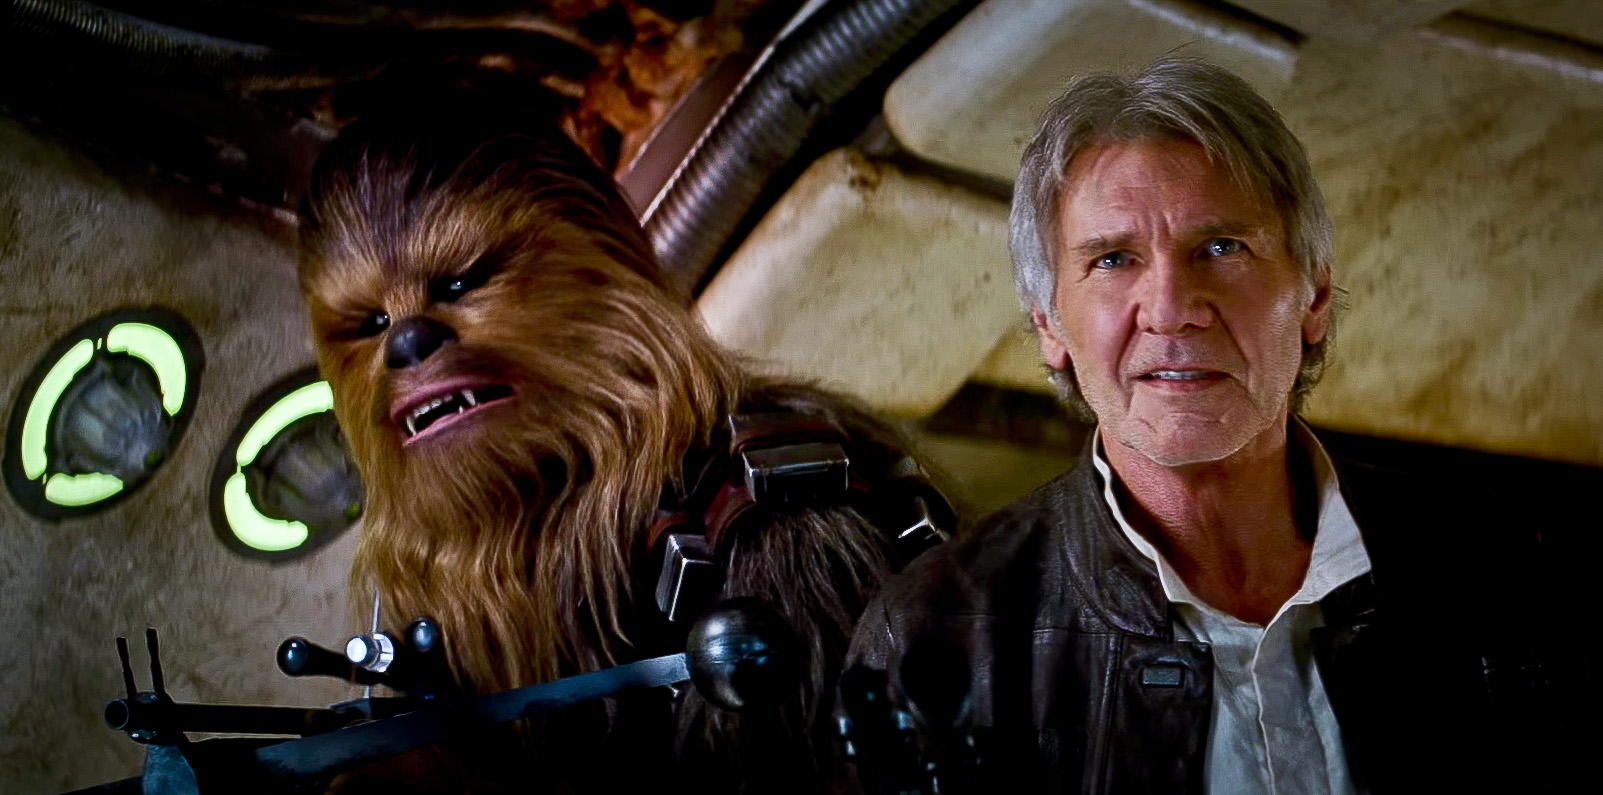 «The force awakens»: la reseña (con spoilers)